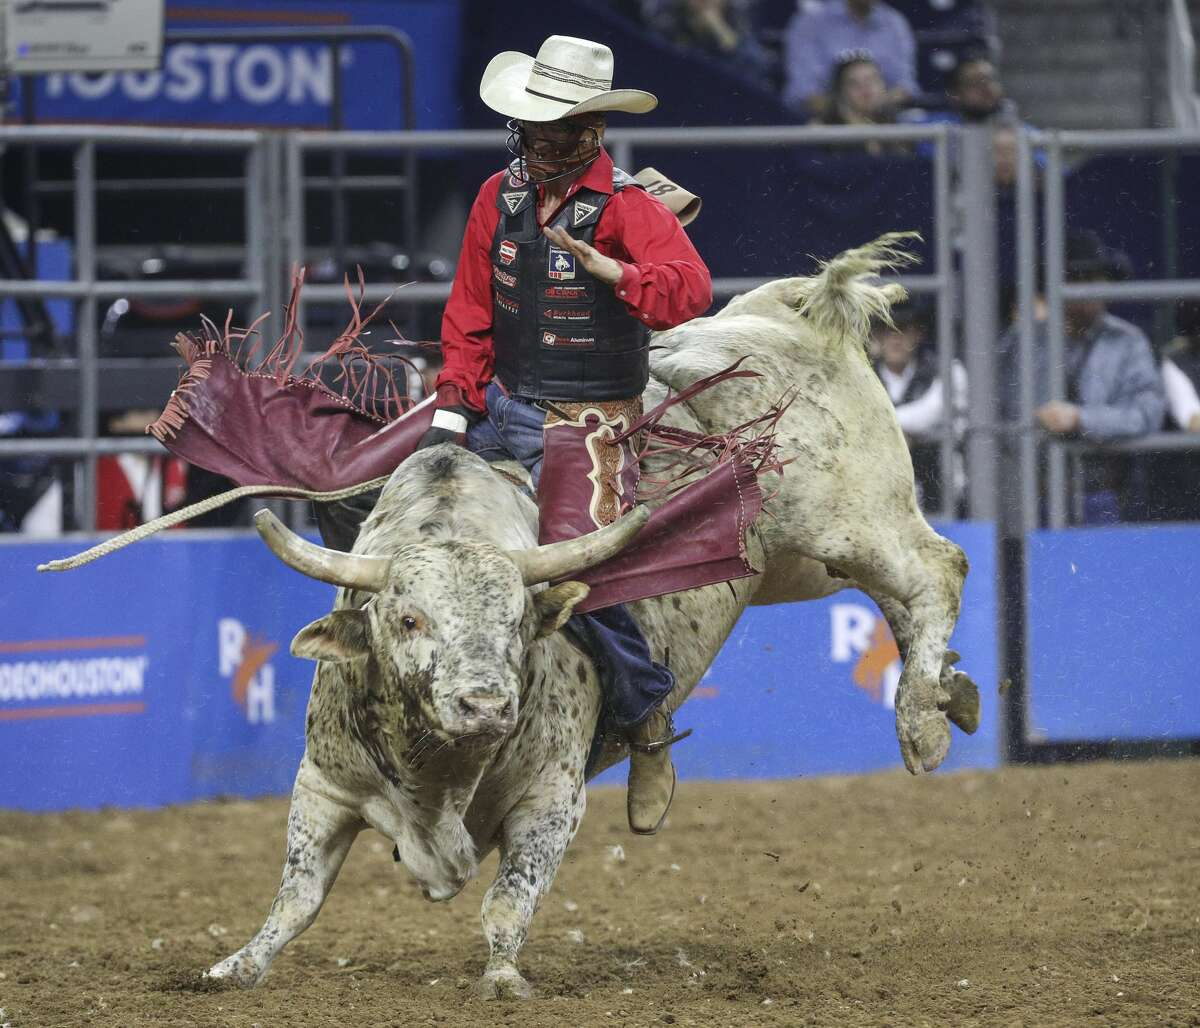 Cole Fischer competes in the bull riding event at the Houston Livestock Show and Rodeo on Thursday, March 5, 2020, at NRG Stadium in Houston.